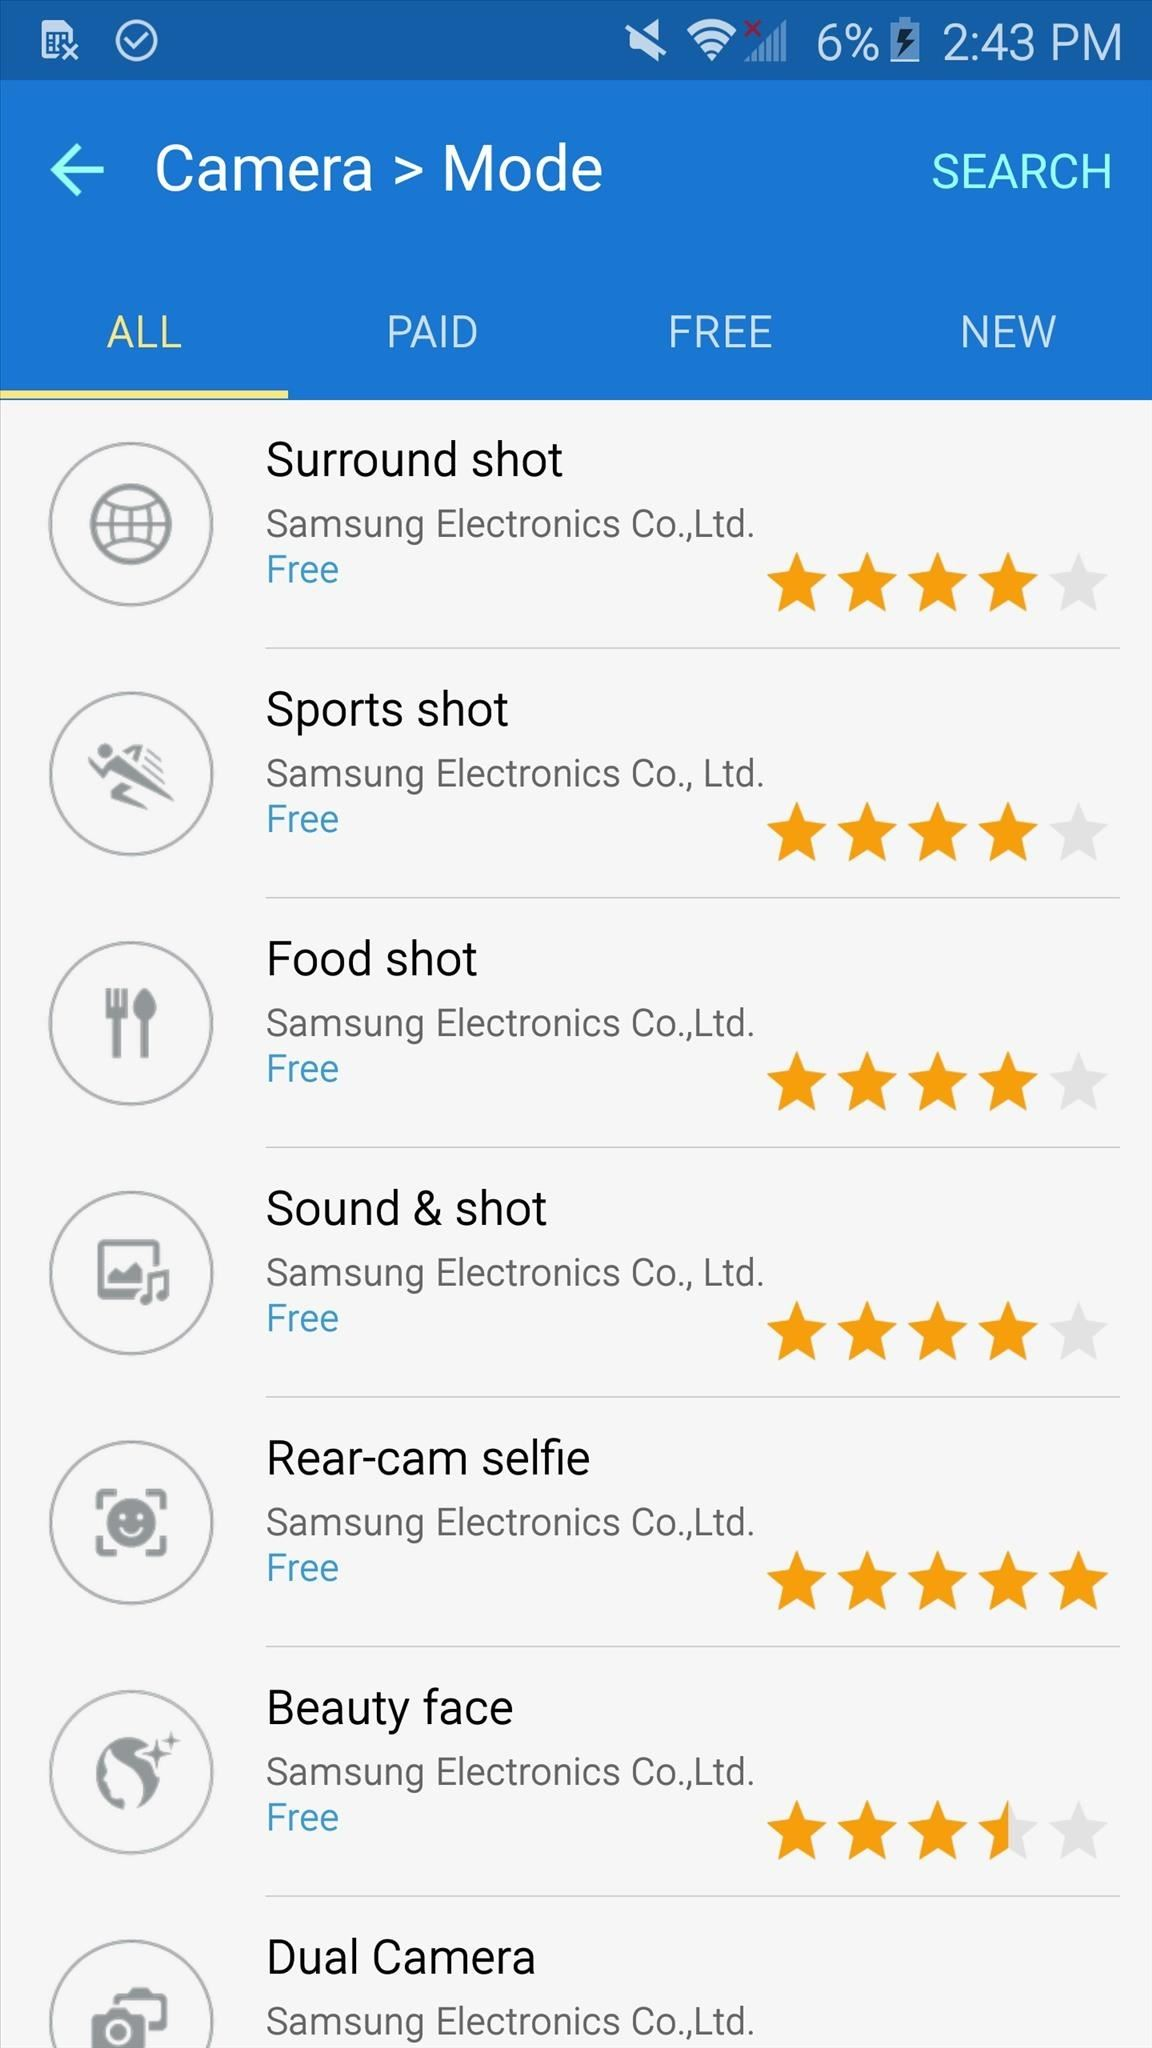 How to Download Additional Camera Modes on a Samsung Galaxy S6